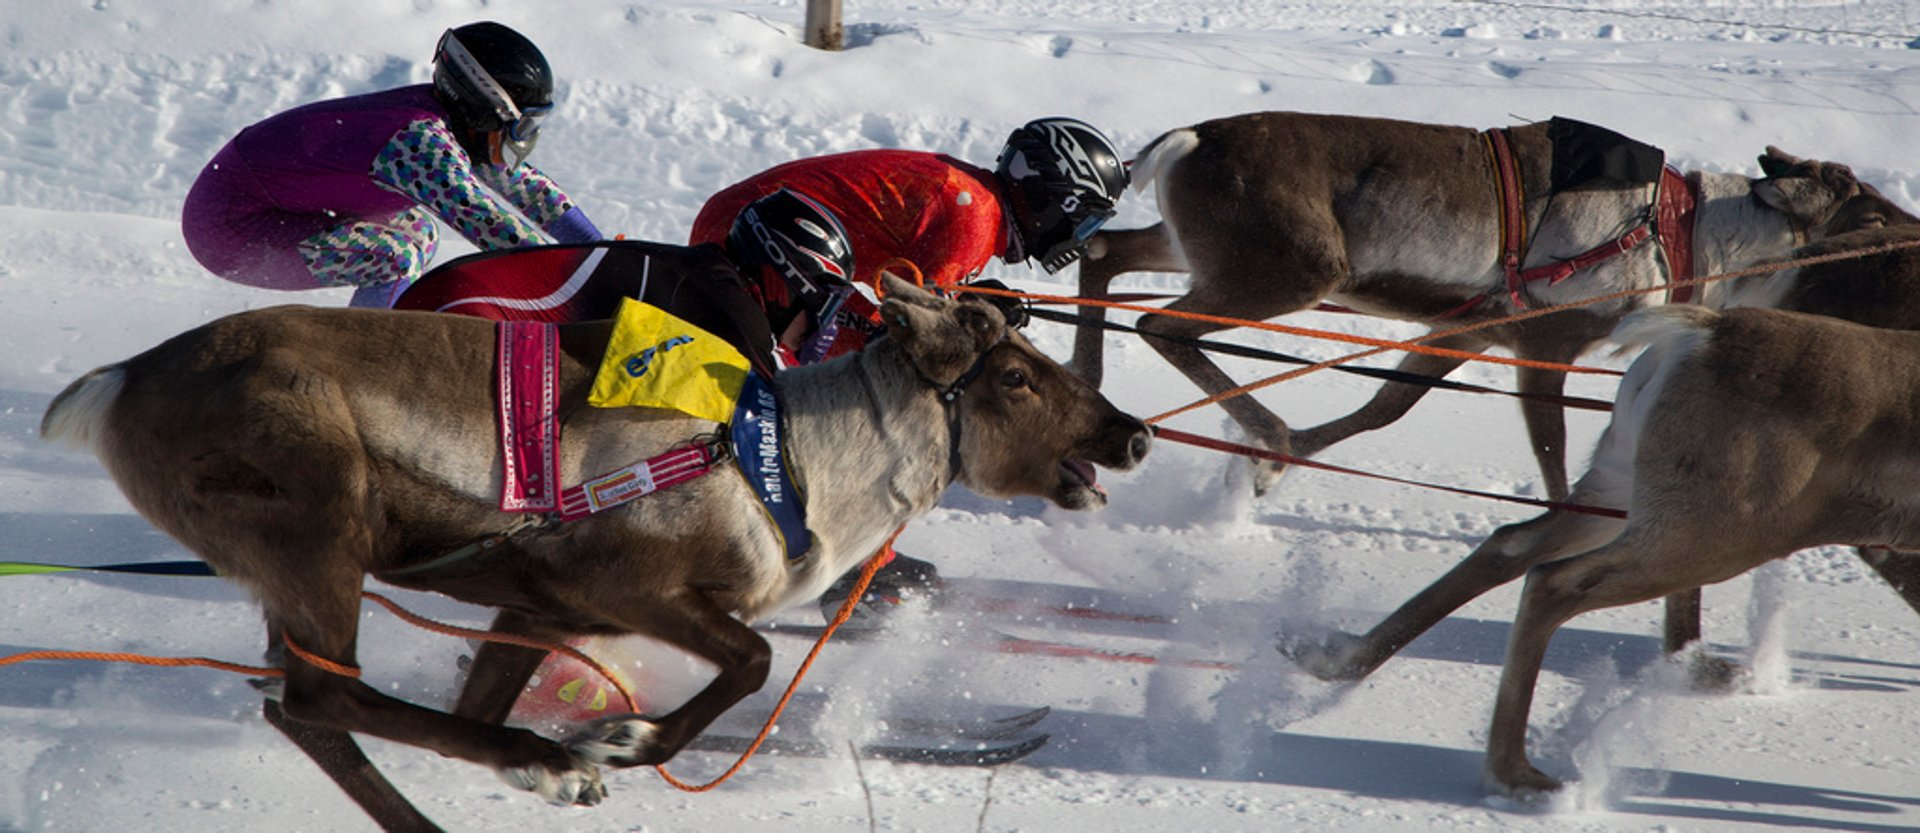 Best time for World Reindeer Racing Championships